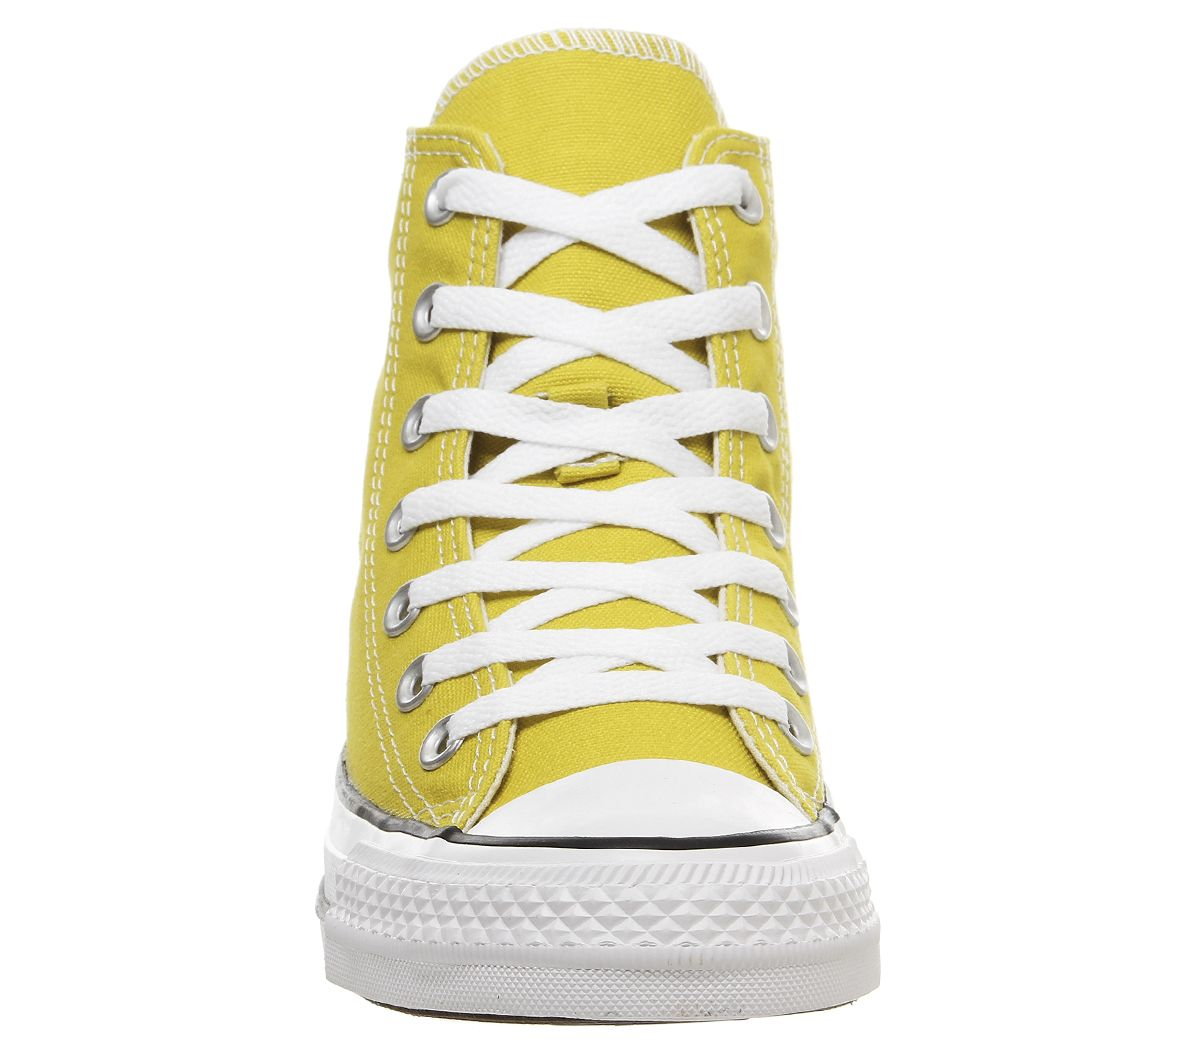 Homme-Converse-Converse-All-Star-HI-Baskets-BOLD-Citron-Baskets-Chaussures miniature 3